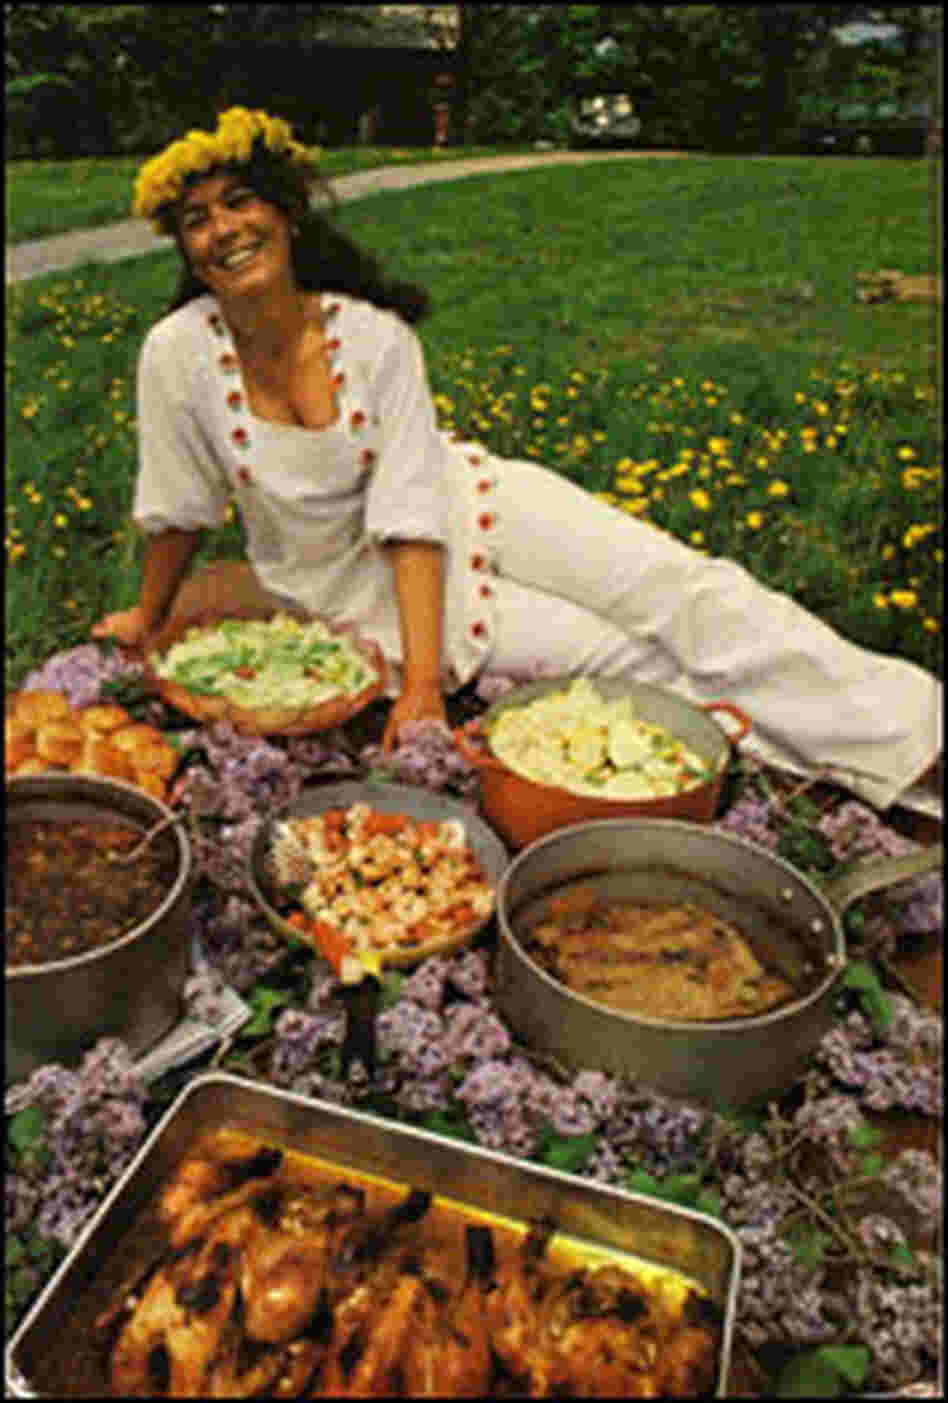 Alice Brock, pictured in 1969, with food she has made laid out before her.